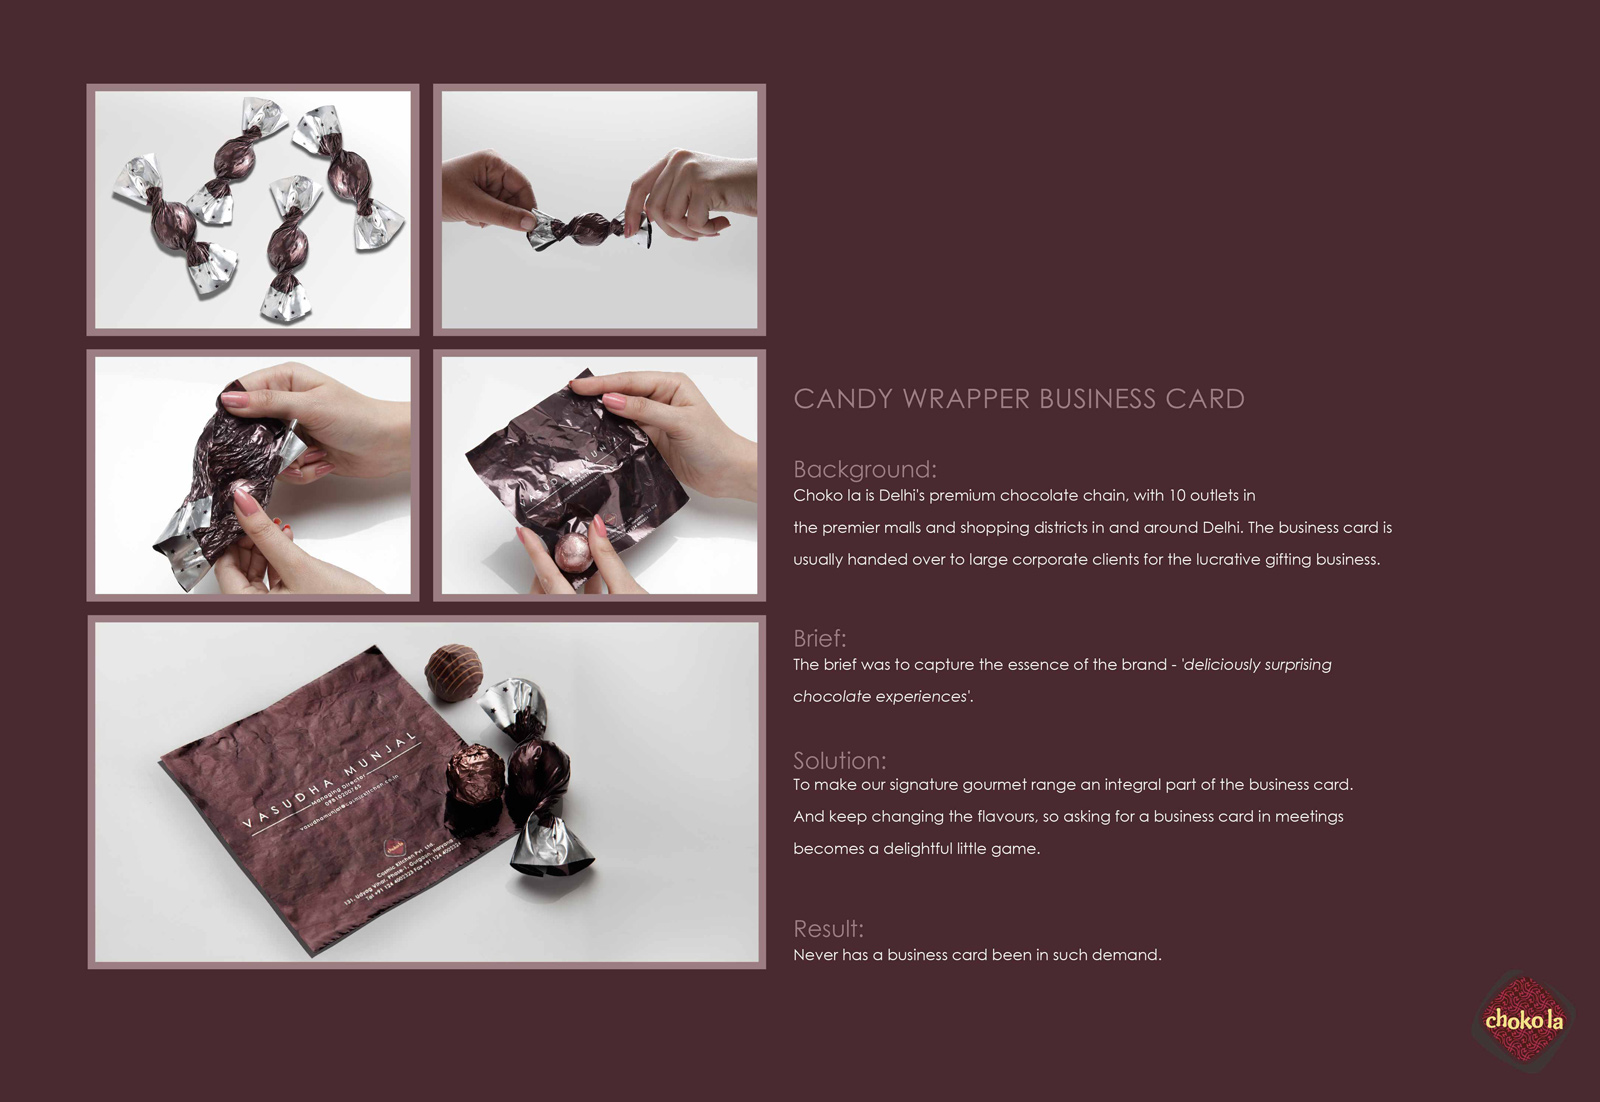 Choko la Direct Advert By FCB: Candy wrapper business card | Ads of ...